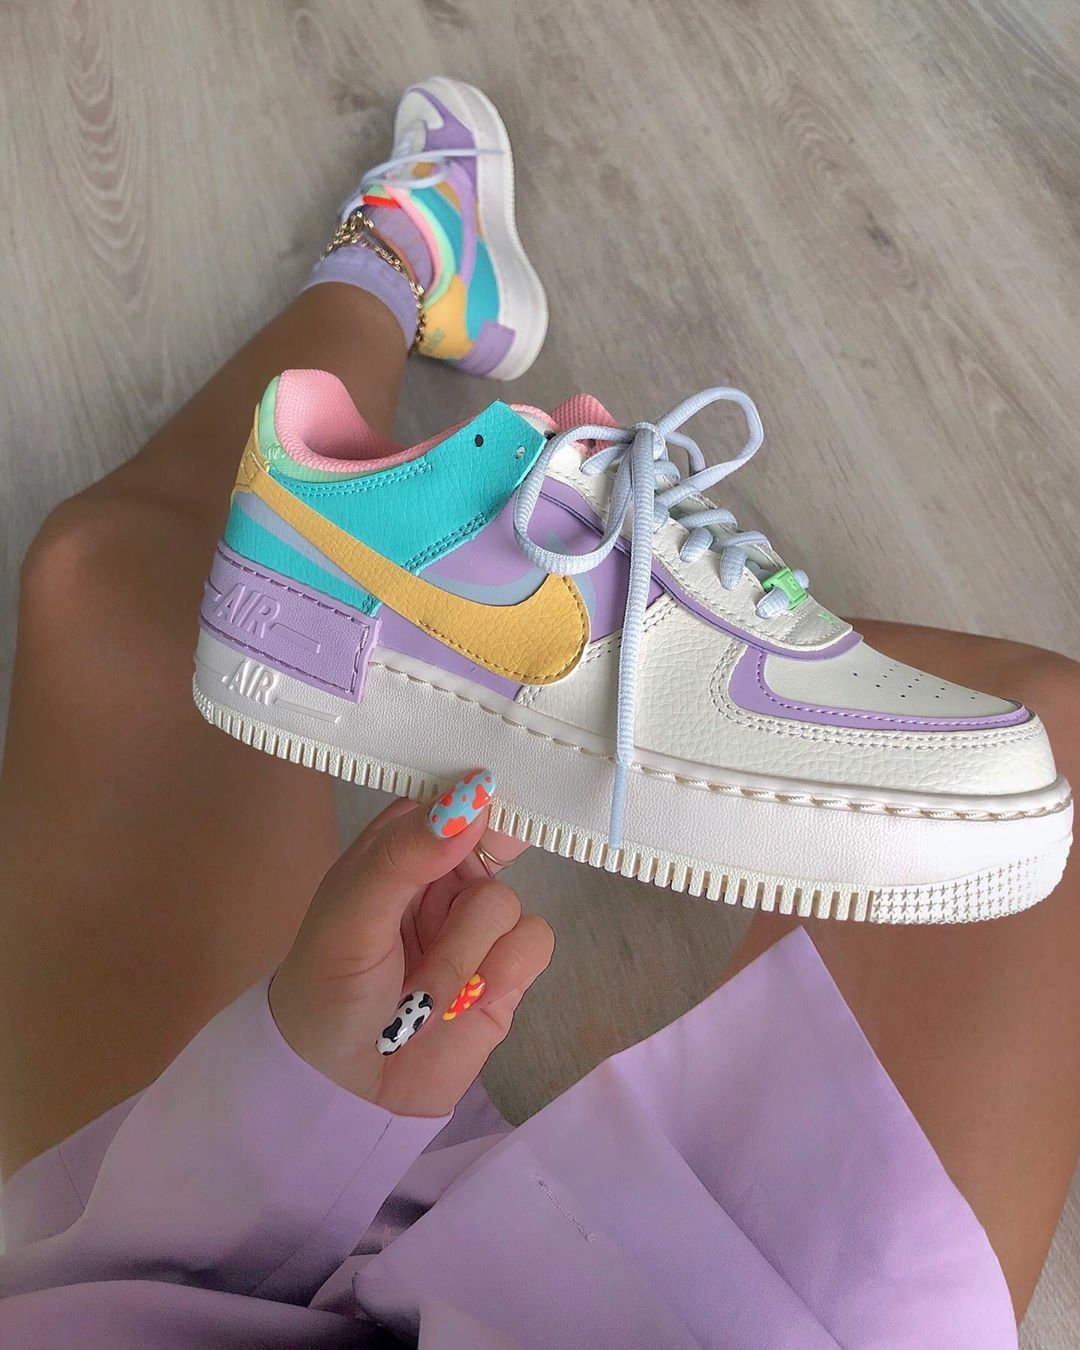 Nike Air Force 1 Shadow Pale Ivory | Nike schuhe, Schuhe ...